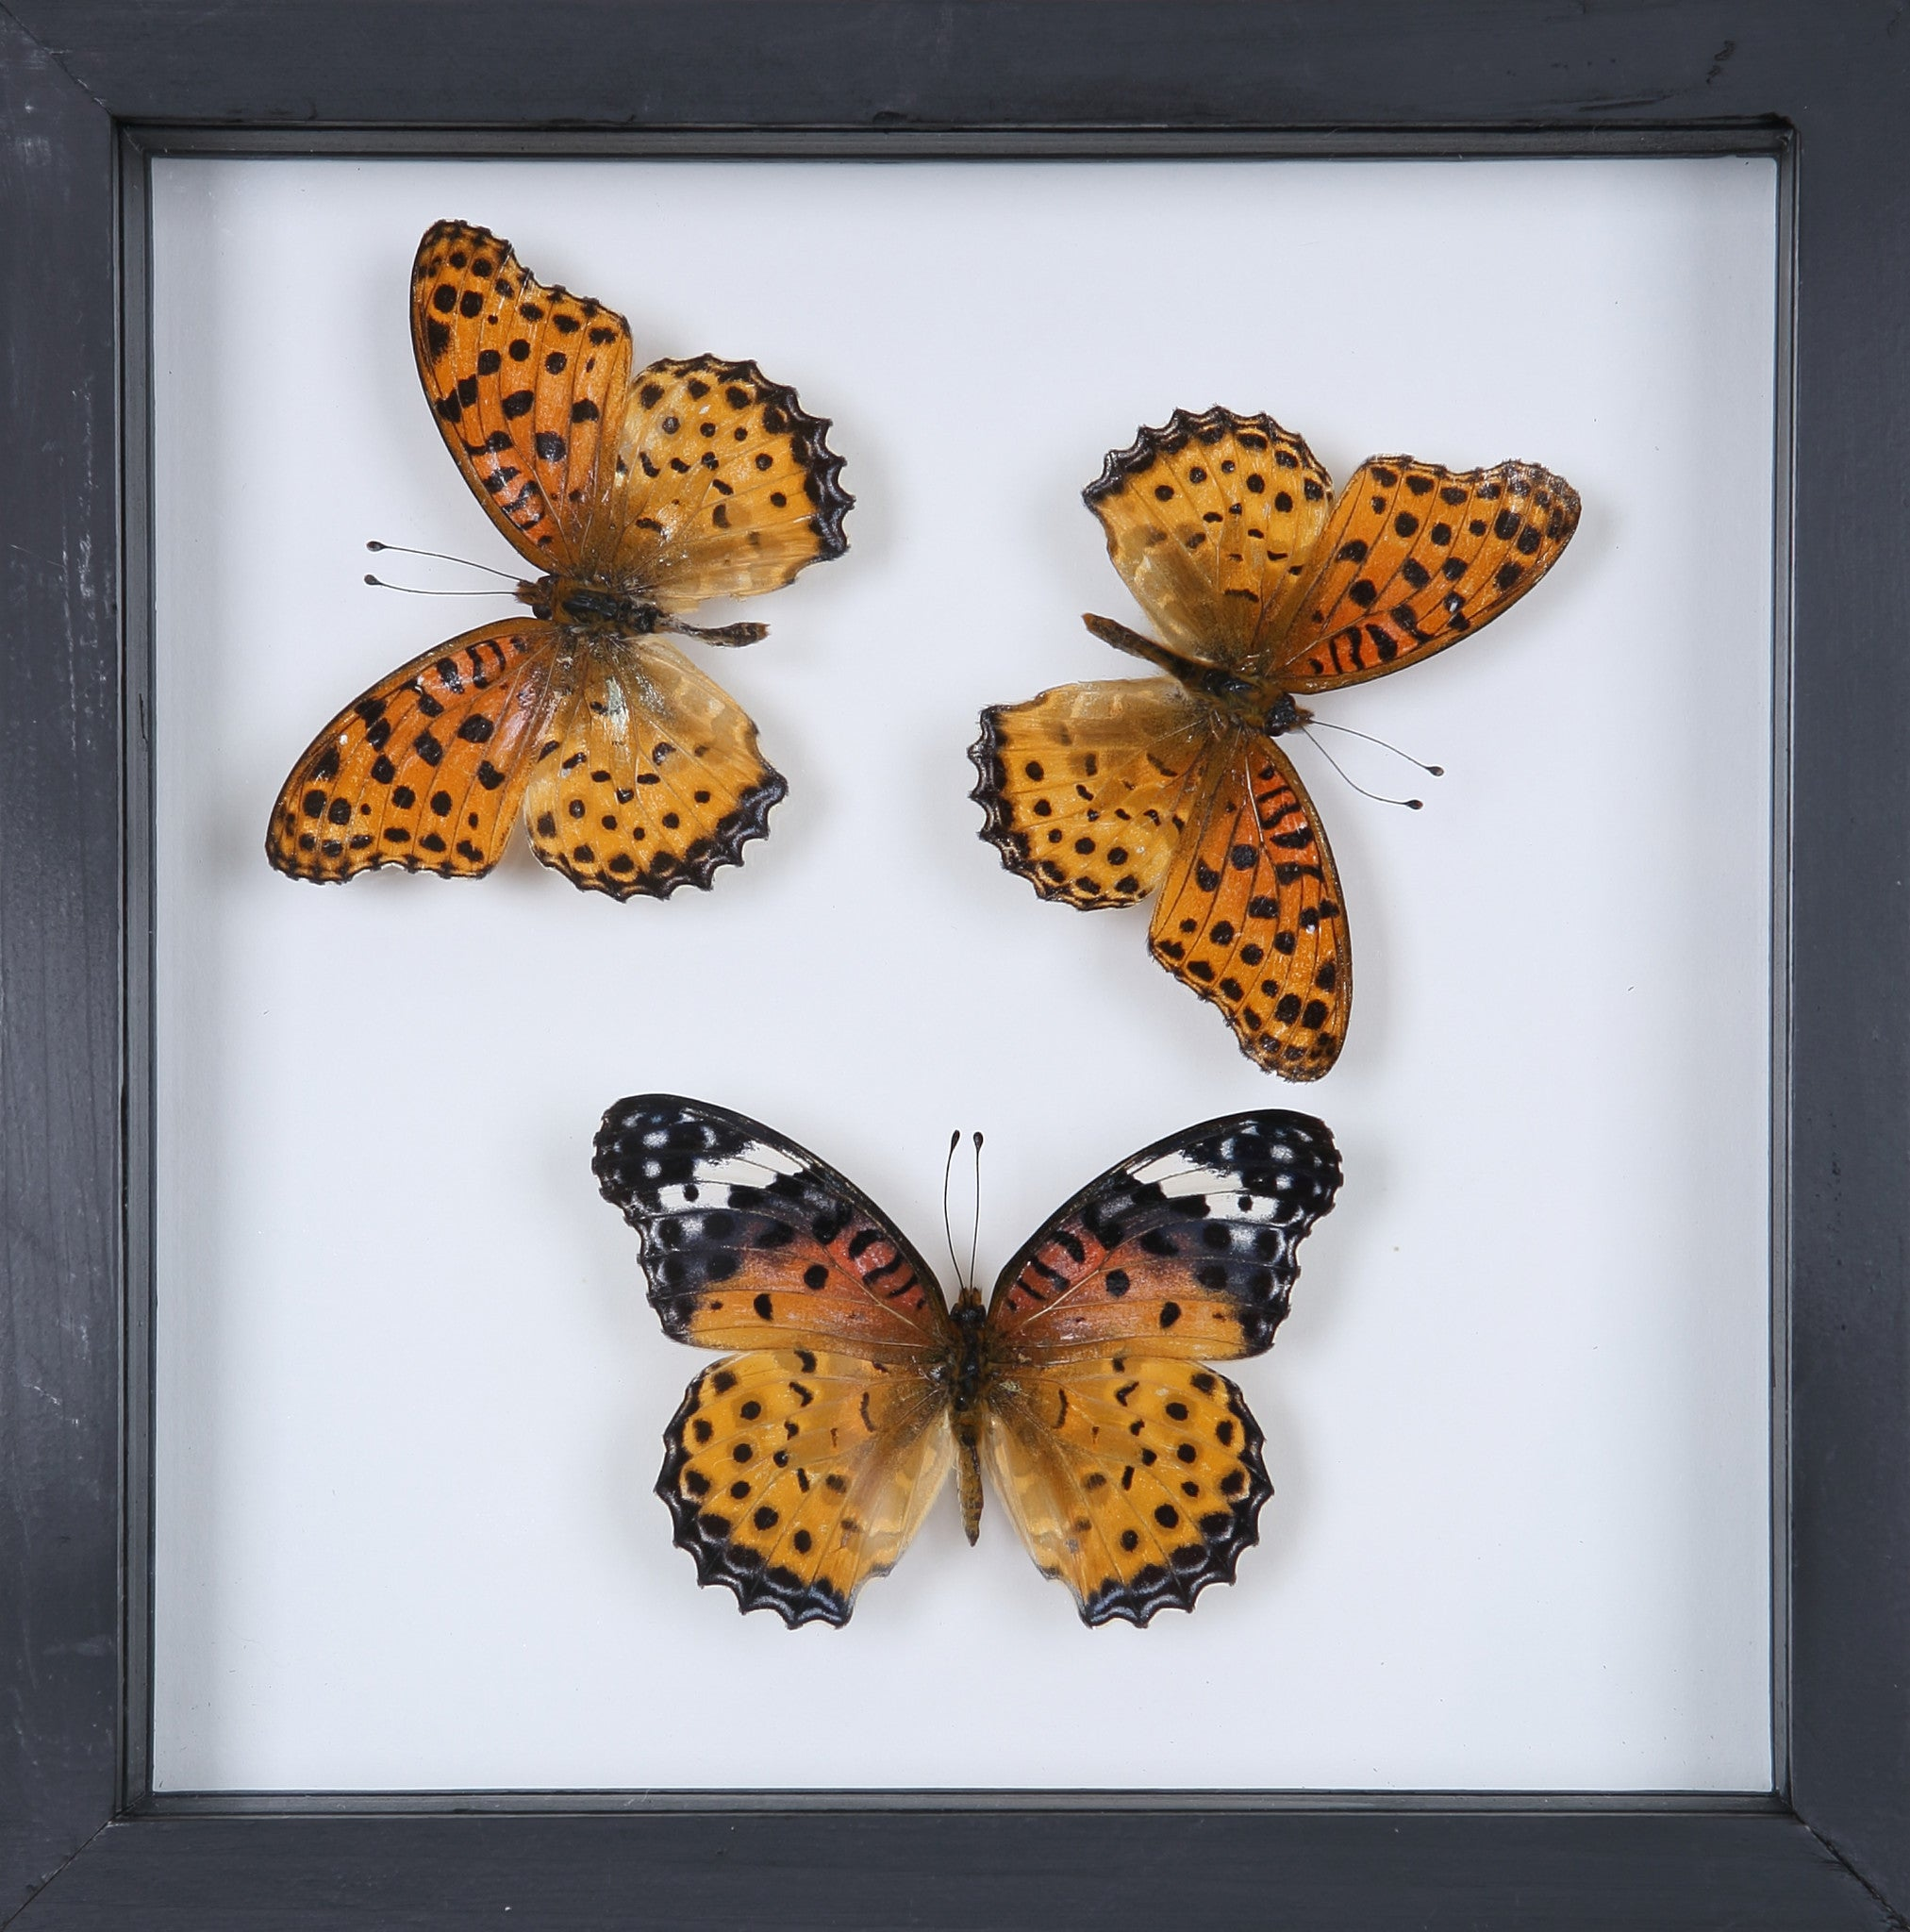 Stunning Mounted Butterflies | Framed Butterflies 12-052 – Natural ...